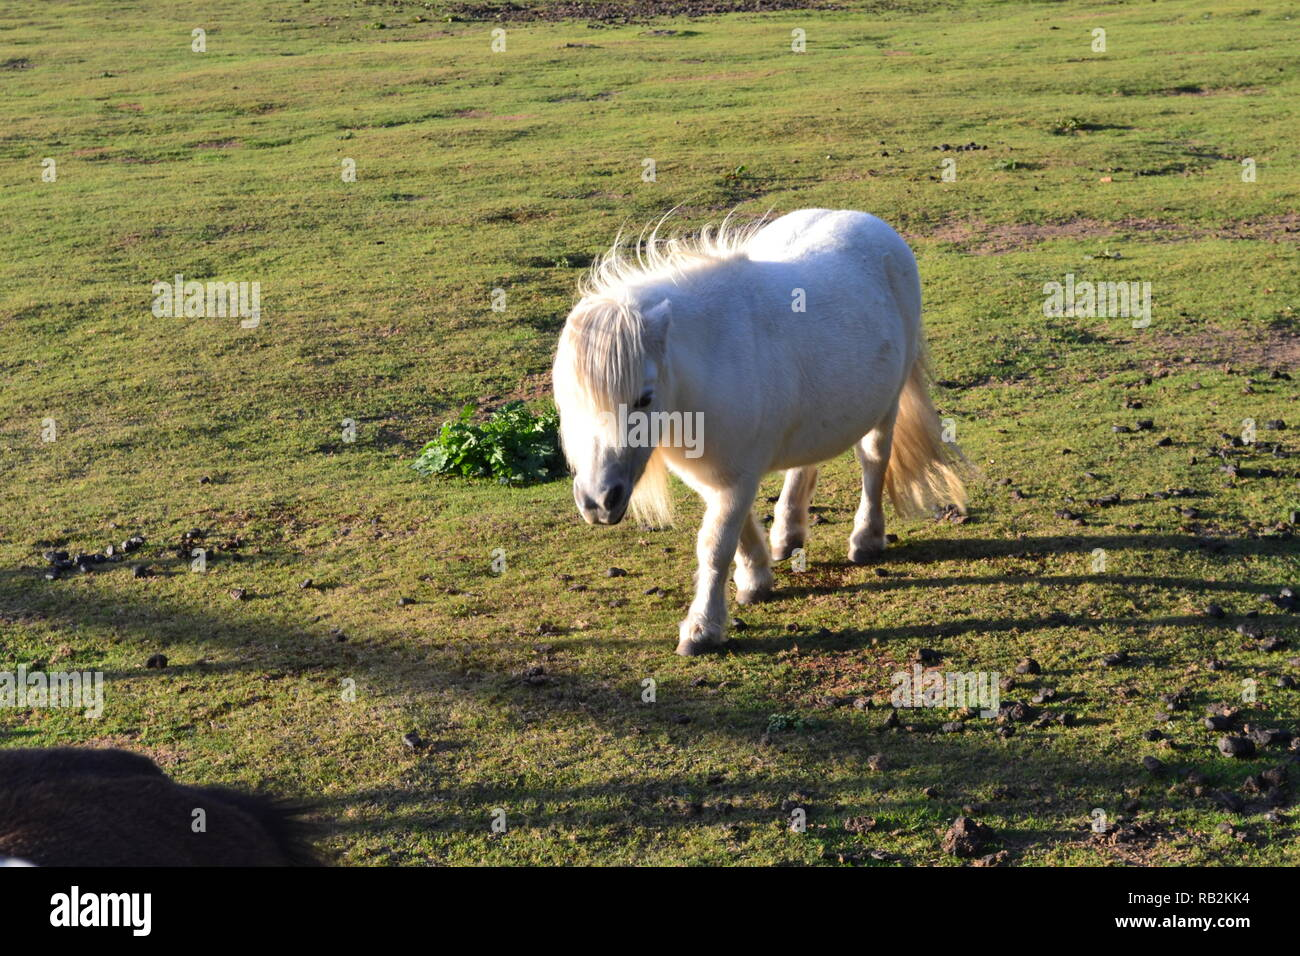 A white Shetland pony in a field at Christmas Tree Farm, a children's farm in Downe, Kent, England, in early autumn late afternoon sunlight - Stock Image